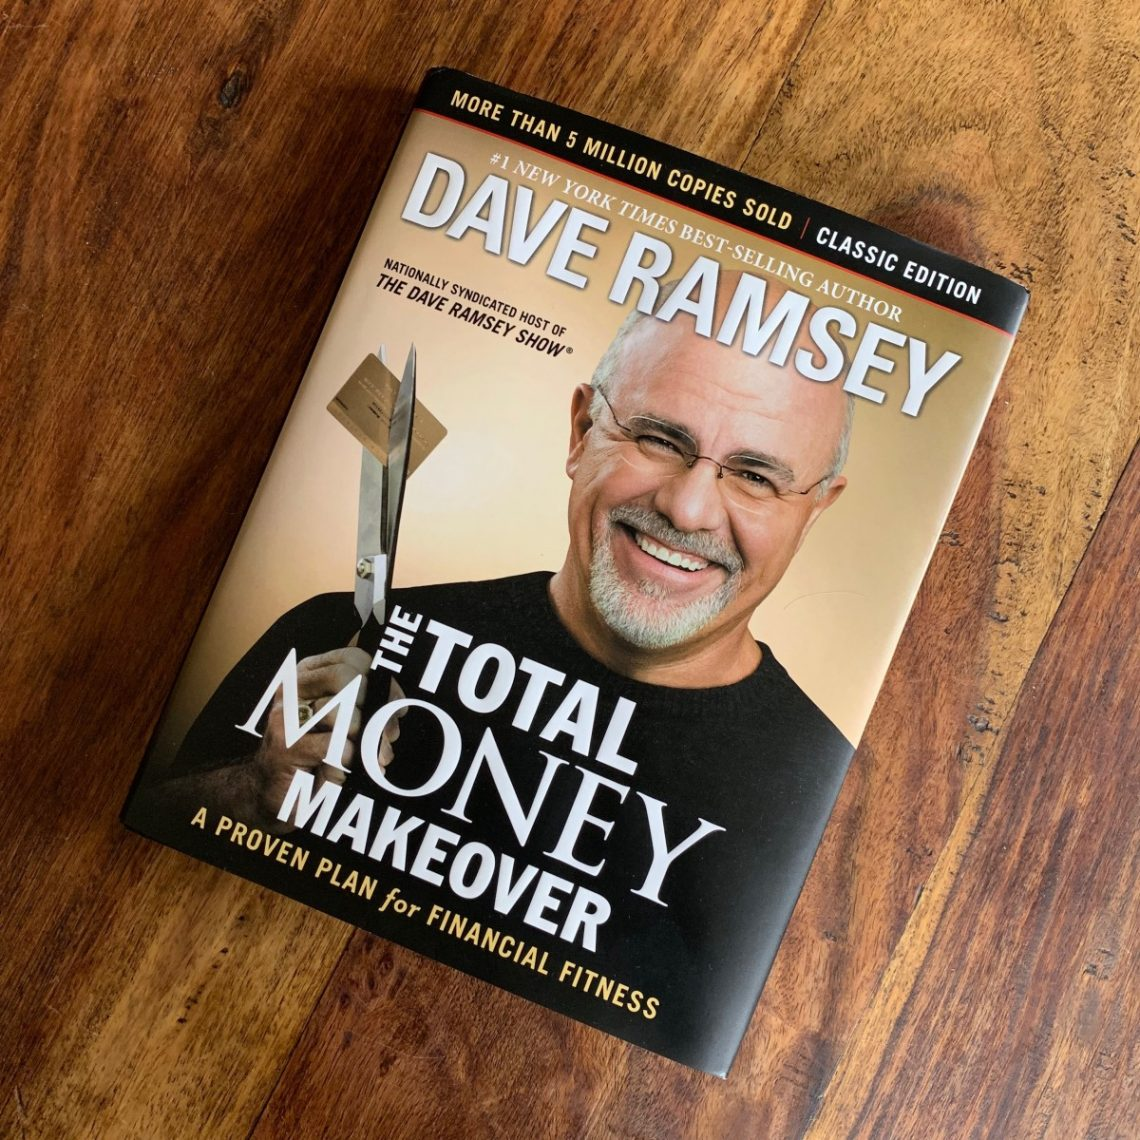 VHNH Total Money Makeover Dave Ramsey